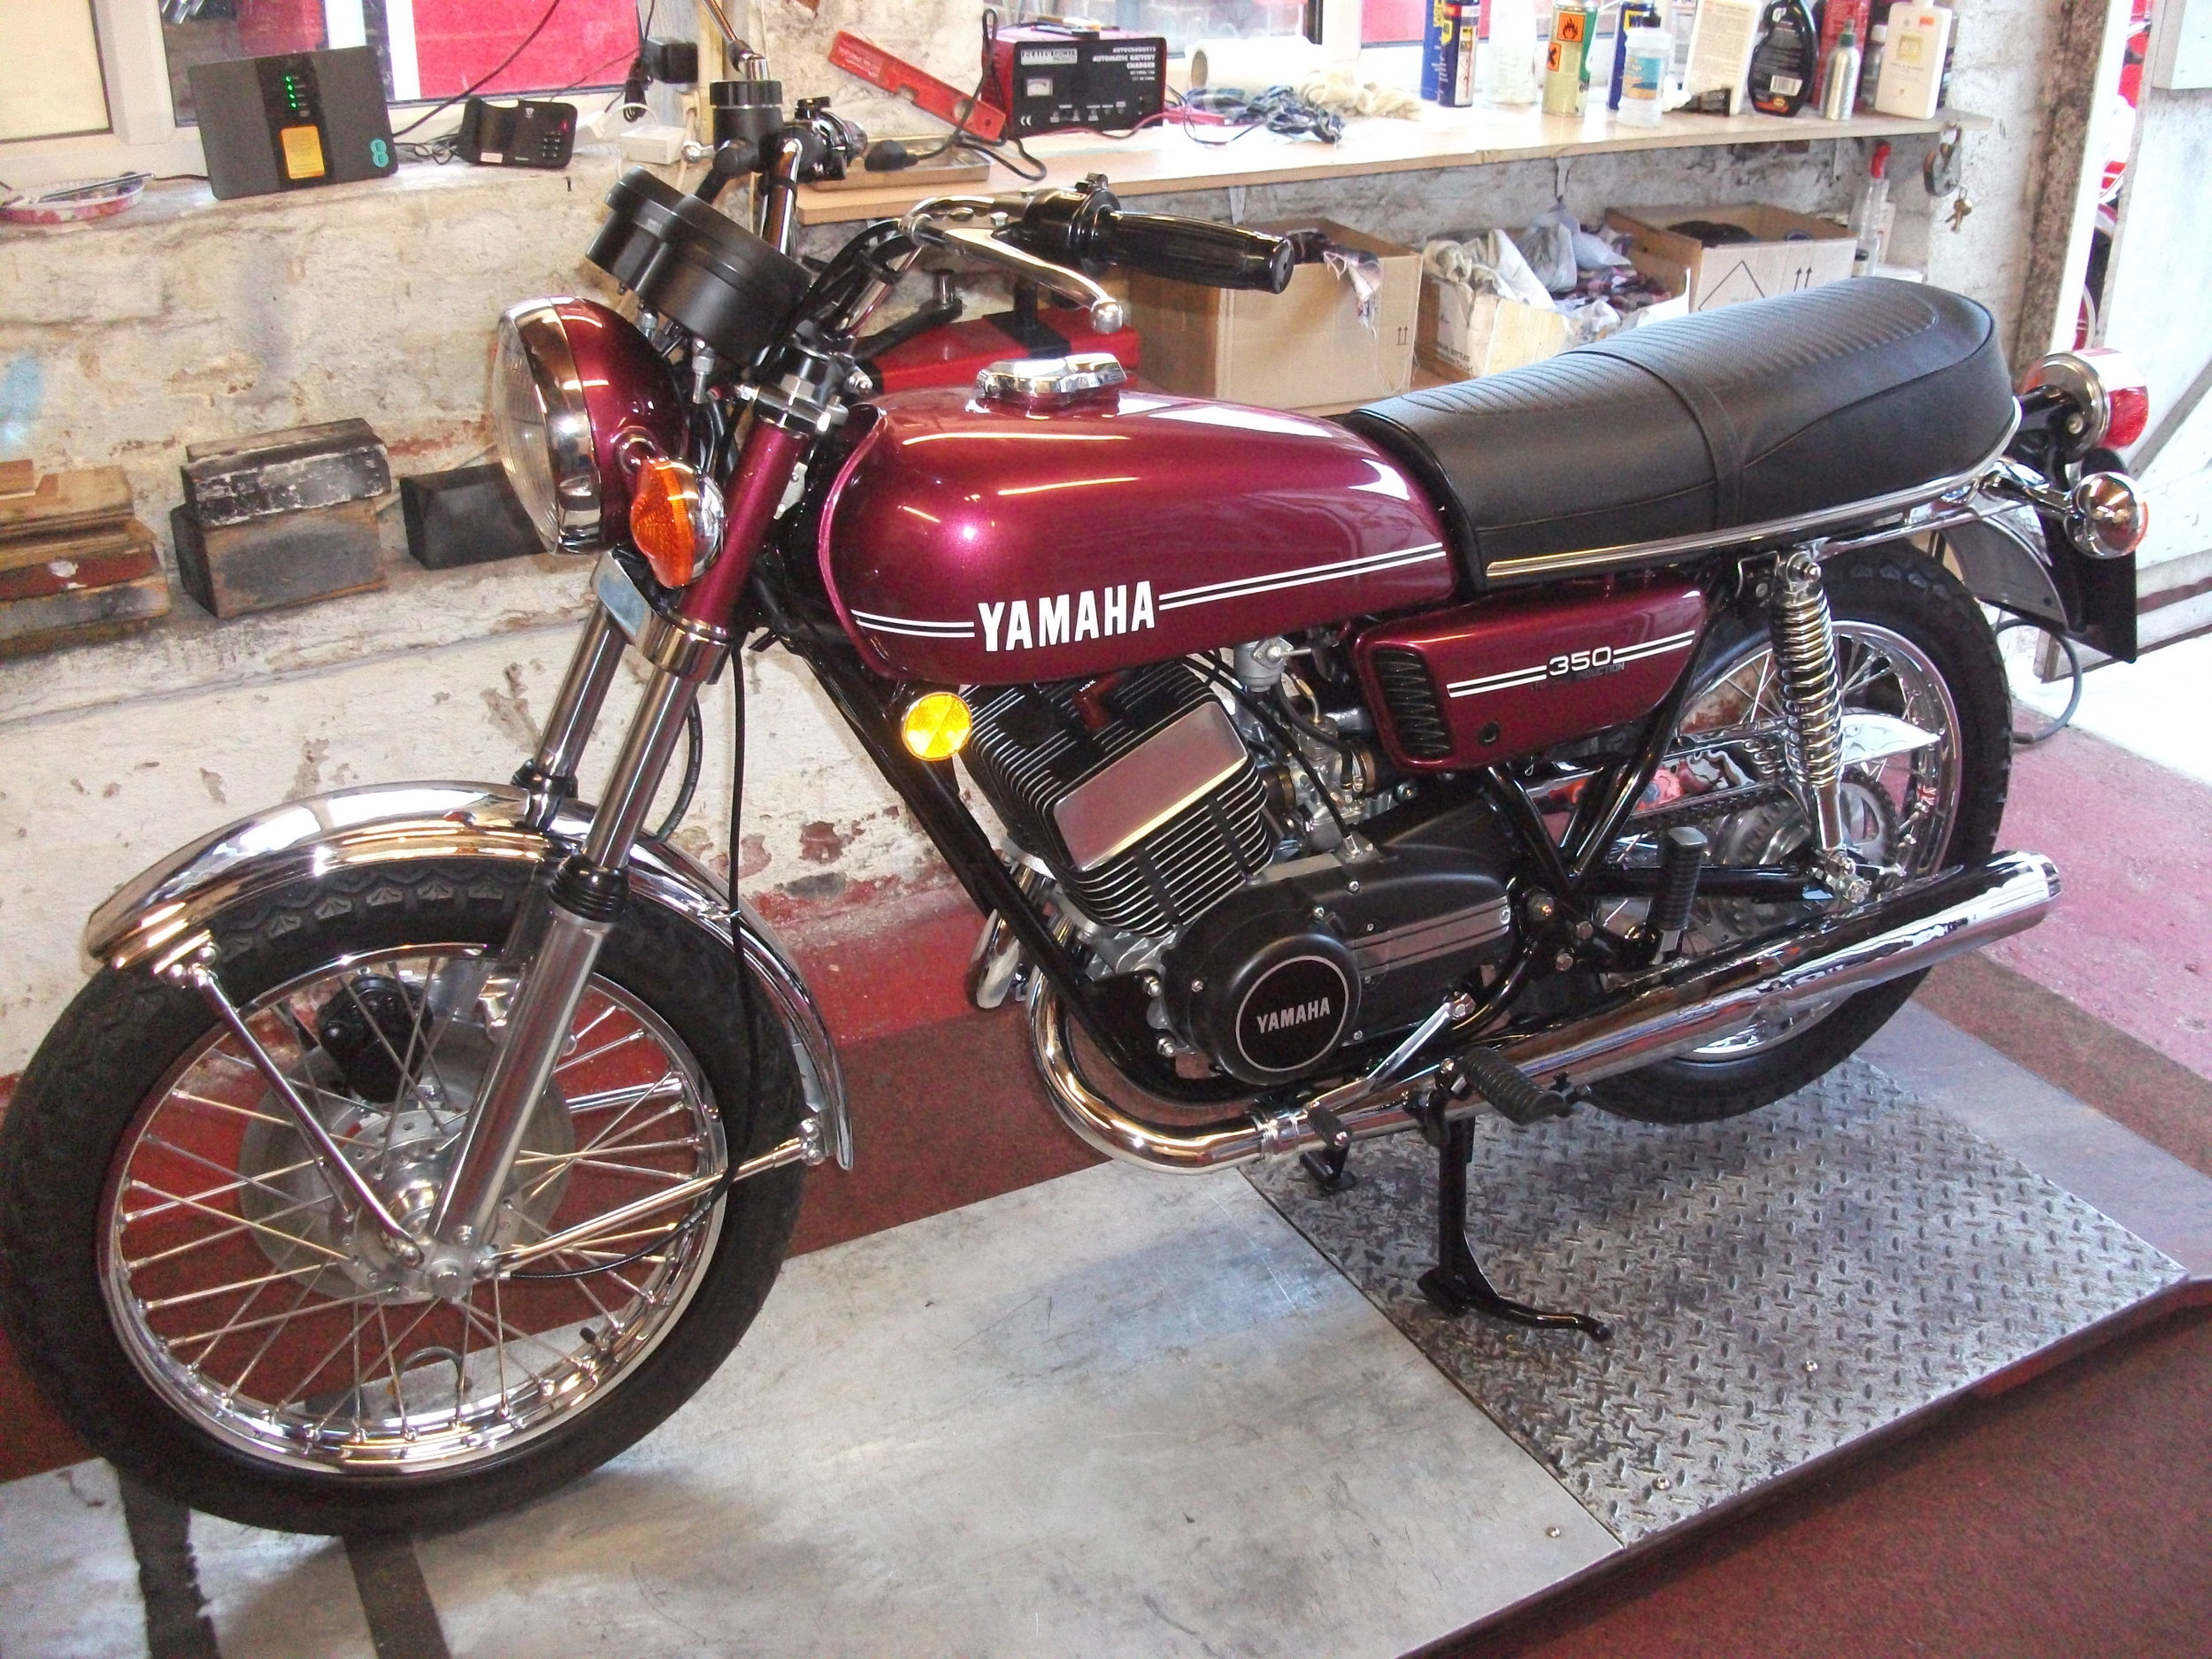 Complete Restoration of a 1974 Yamaha RD350.